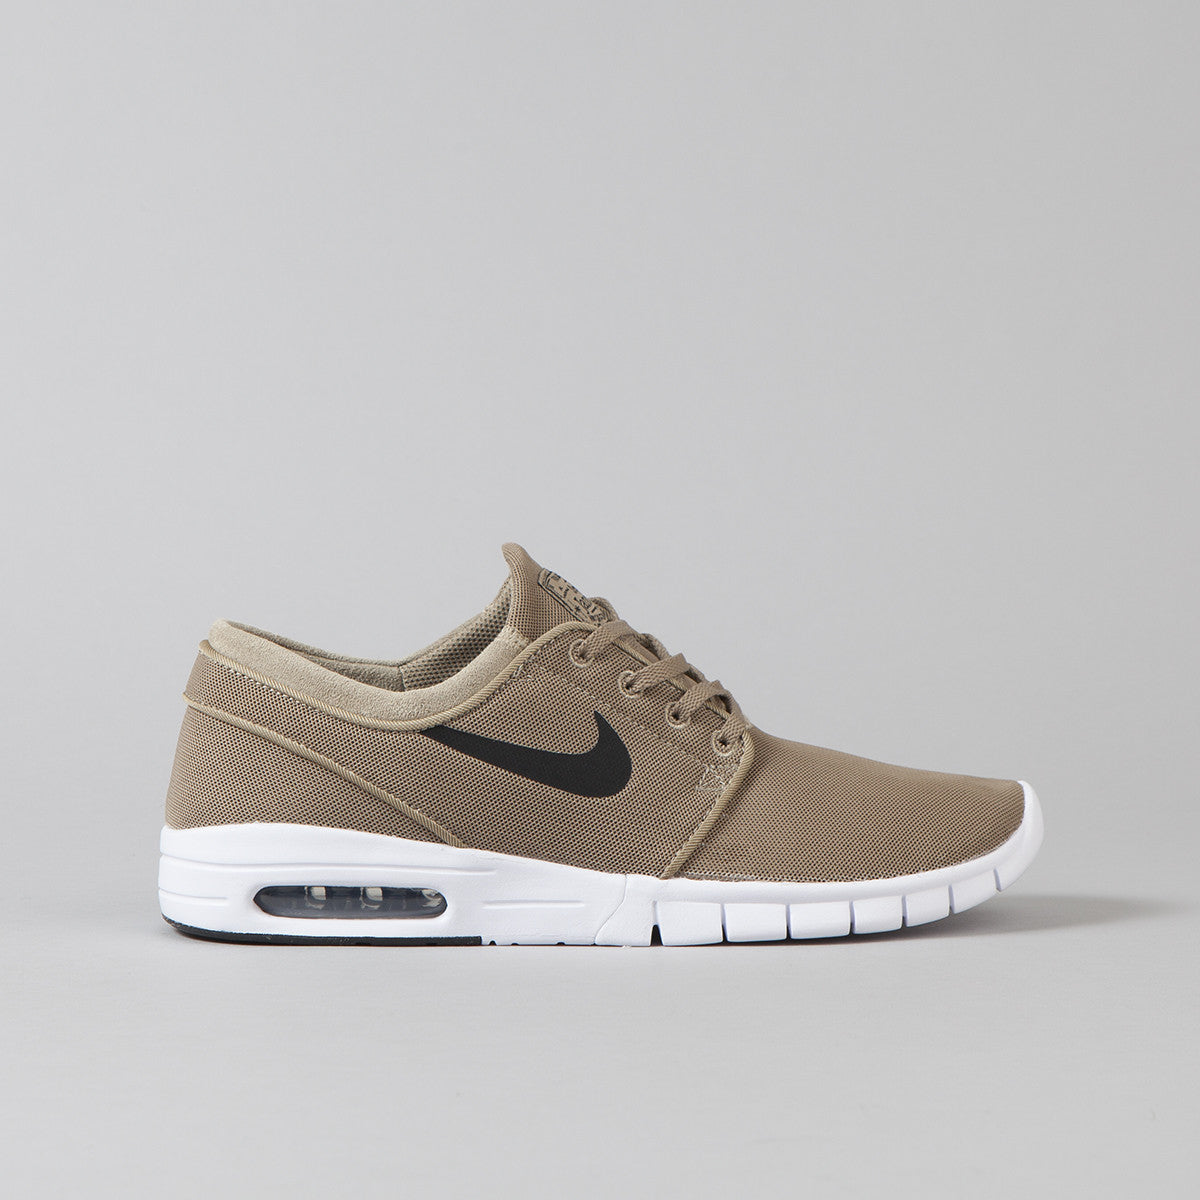 nike sb stefan janoski max shoes khaki black white flatspot. Black Bedroom Furniture Sets. Home Design Ideas